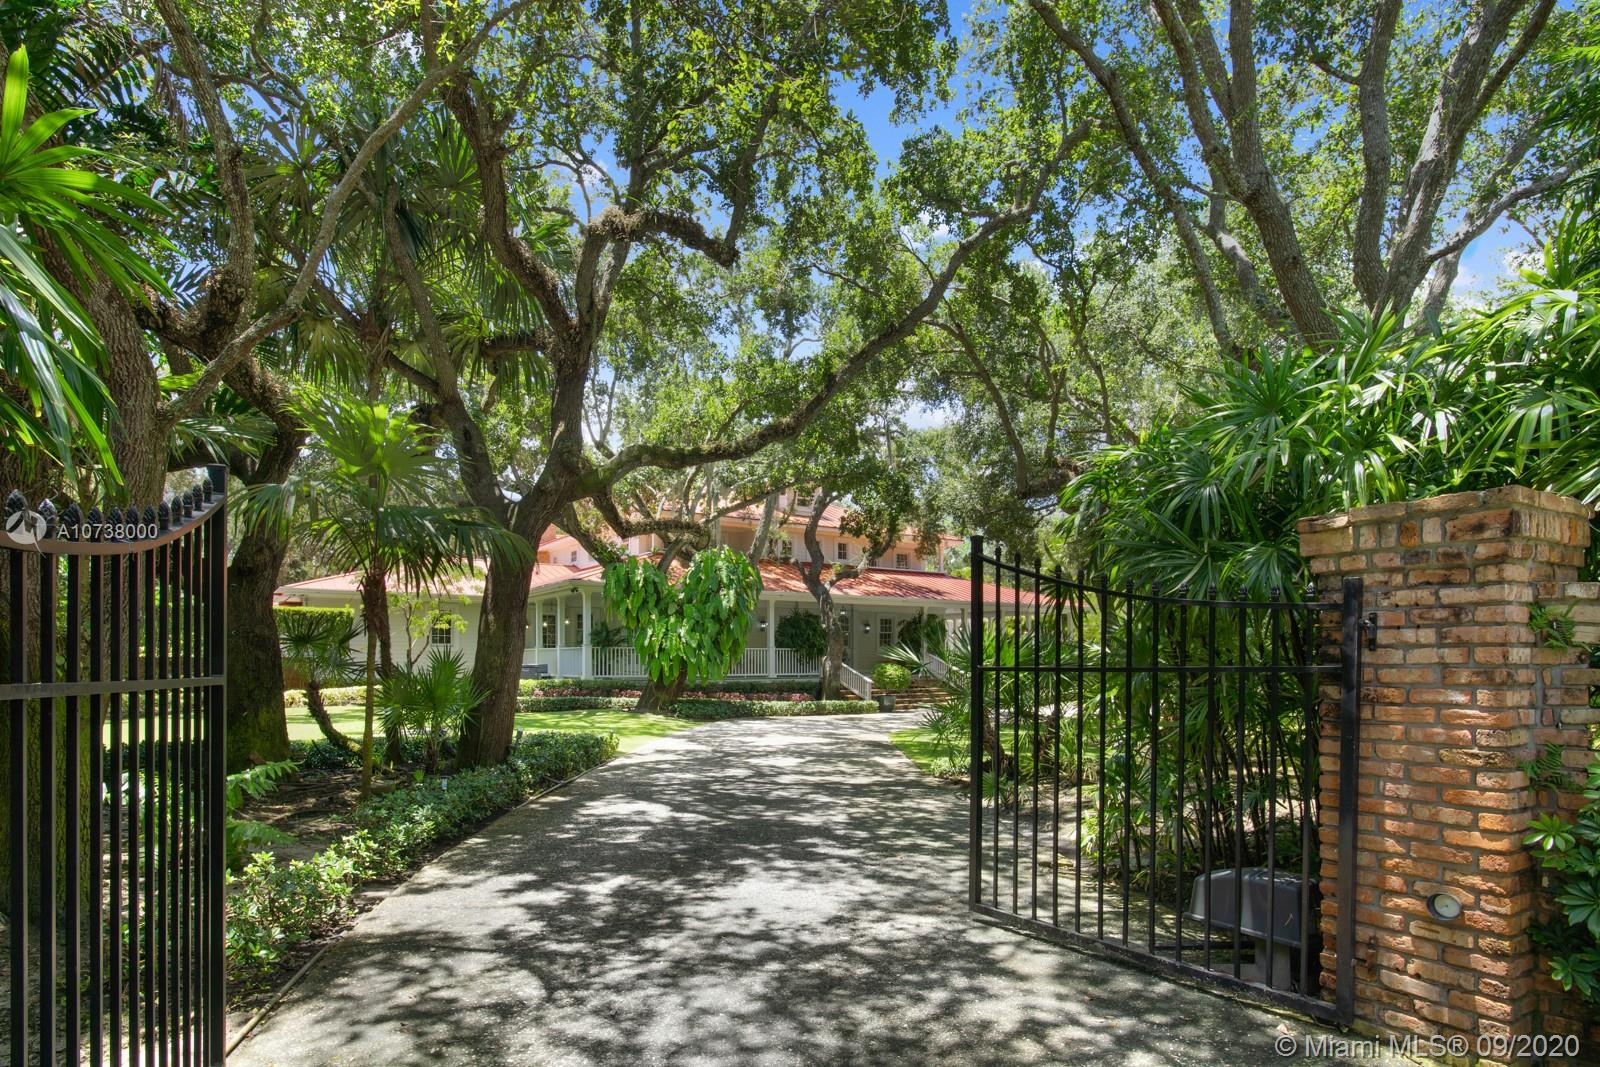 A rare offering of one of the finest waterfront homes in Snapper Creek with private dockage for serious boaters and direct bay access.  This custom home, designed by David Johnson, resides on almost 1.5 aces of lush landscaping, including exquisite lawns, mature trees, ½ basketball court, resort like pool, and 2 story guest house.  The 16k SF house, wrapped with wide porches, has 6 bedrooms and 6.5 baths, a gourmet eat in kitchen, 2 family rooms, formal living and dining rooms, 5,000 bottle wine cellar, gym, media room, game room, dedicated play area for kids, wood cloaked office, 4 car garage with multiple storage areas and generator which can power the house for 2 weeks.  A truly one of a kind exceptional residence.